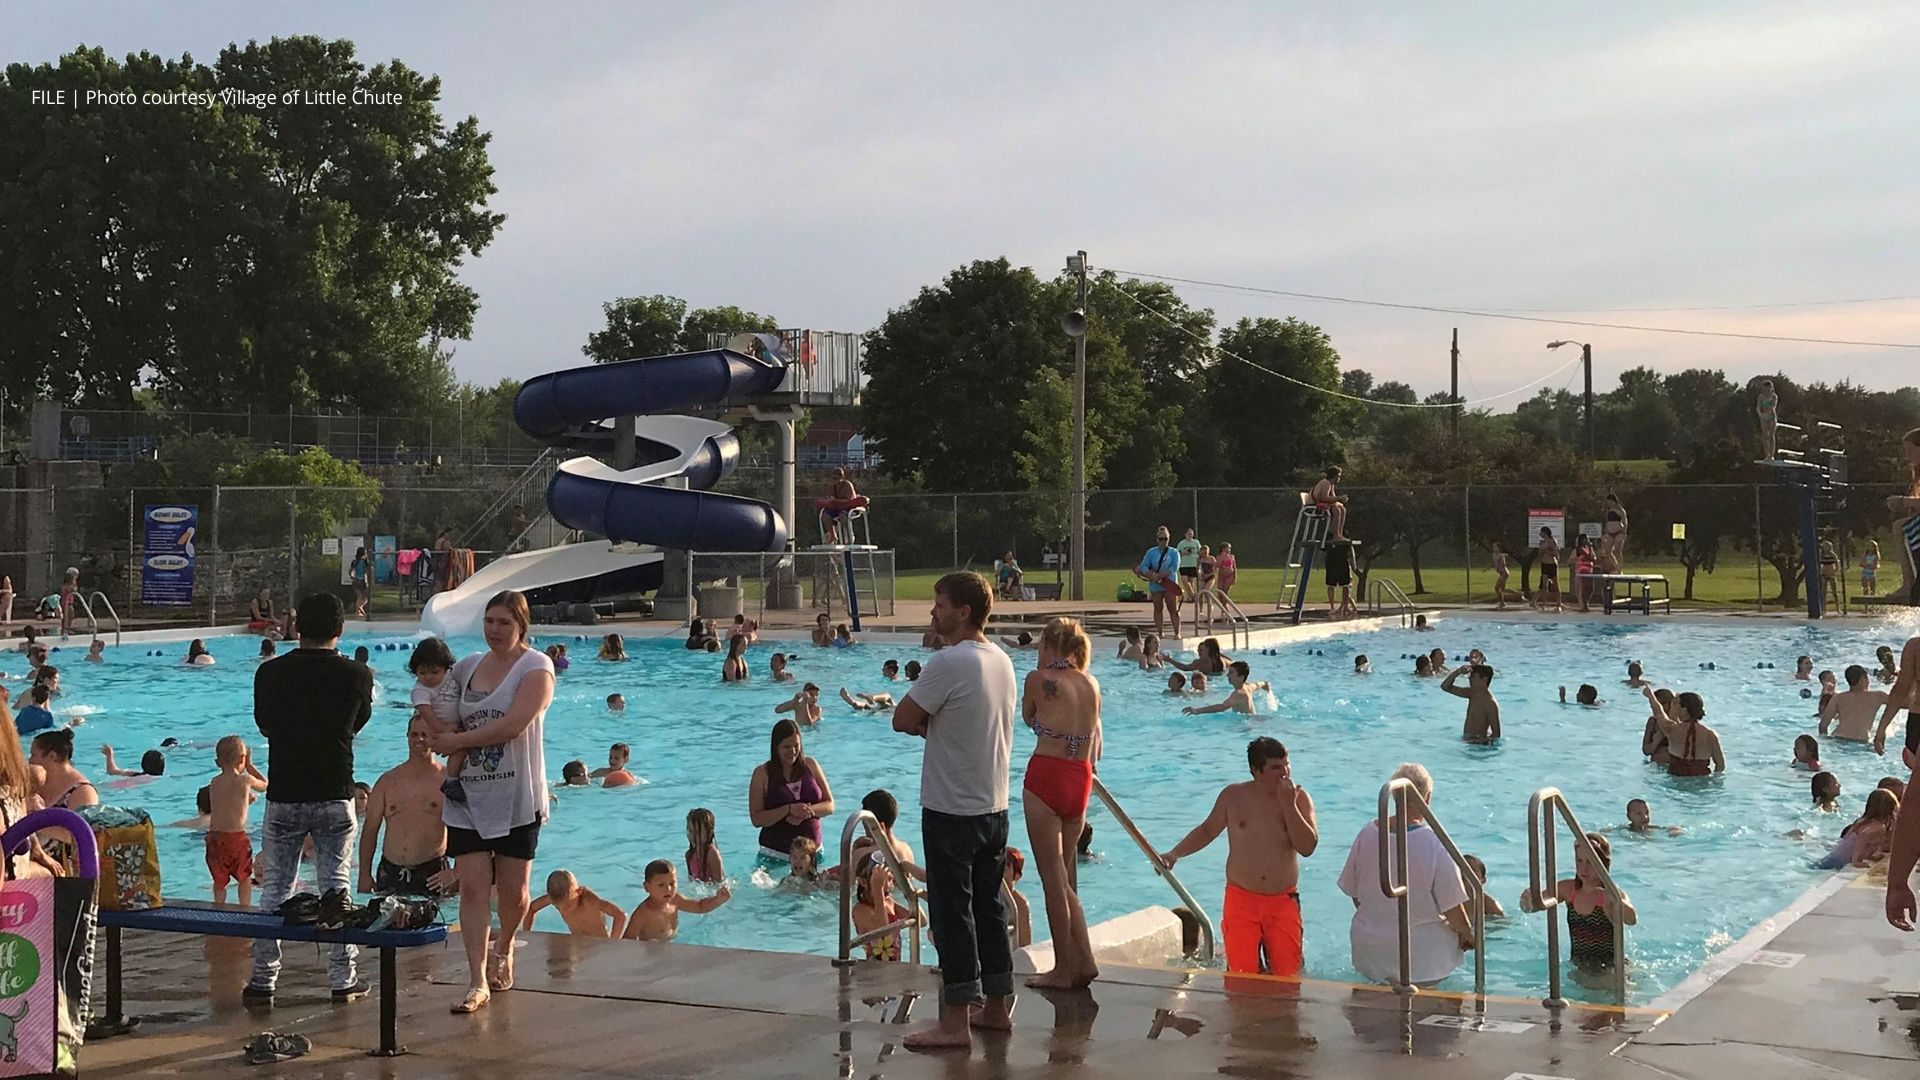 Update Doyle Pool In Little Chute Reopens July 13 Wfrv Local 5 Green Bay Appleton